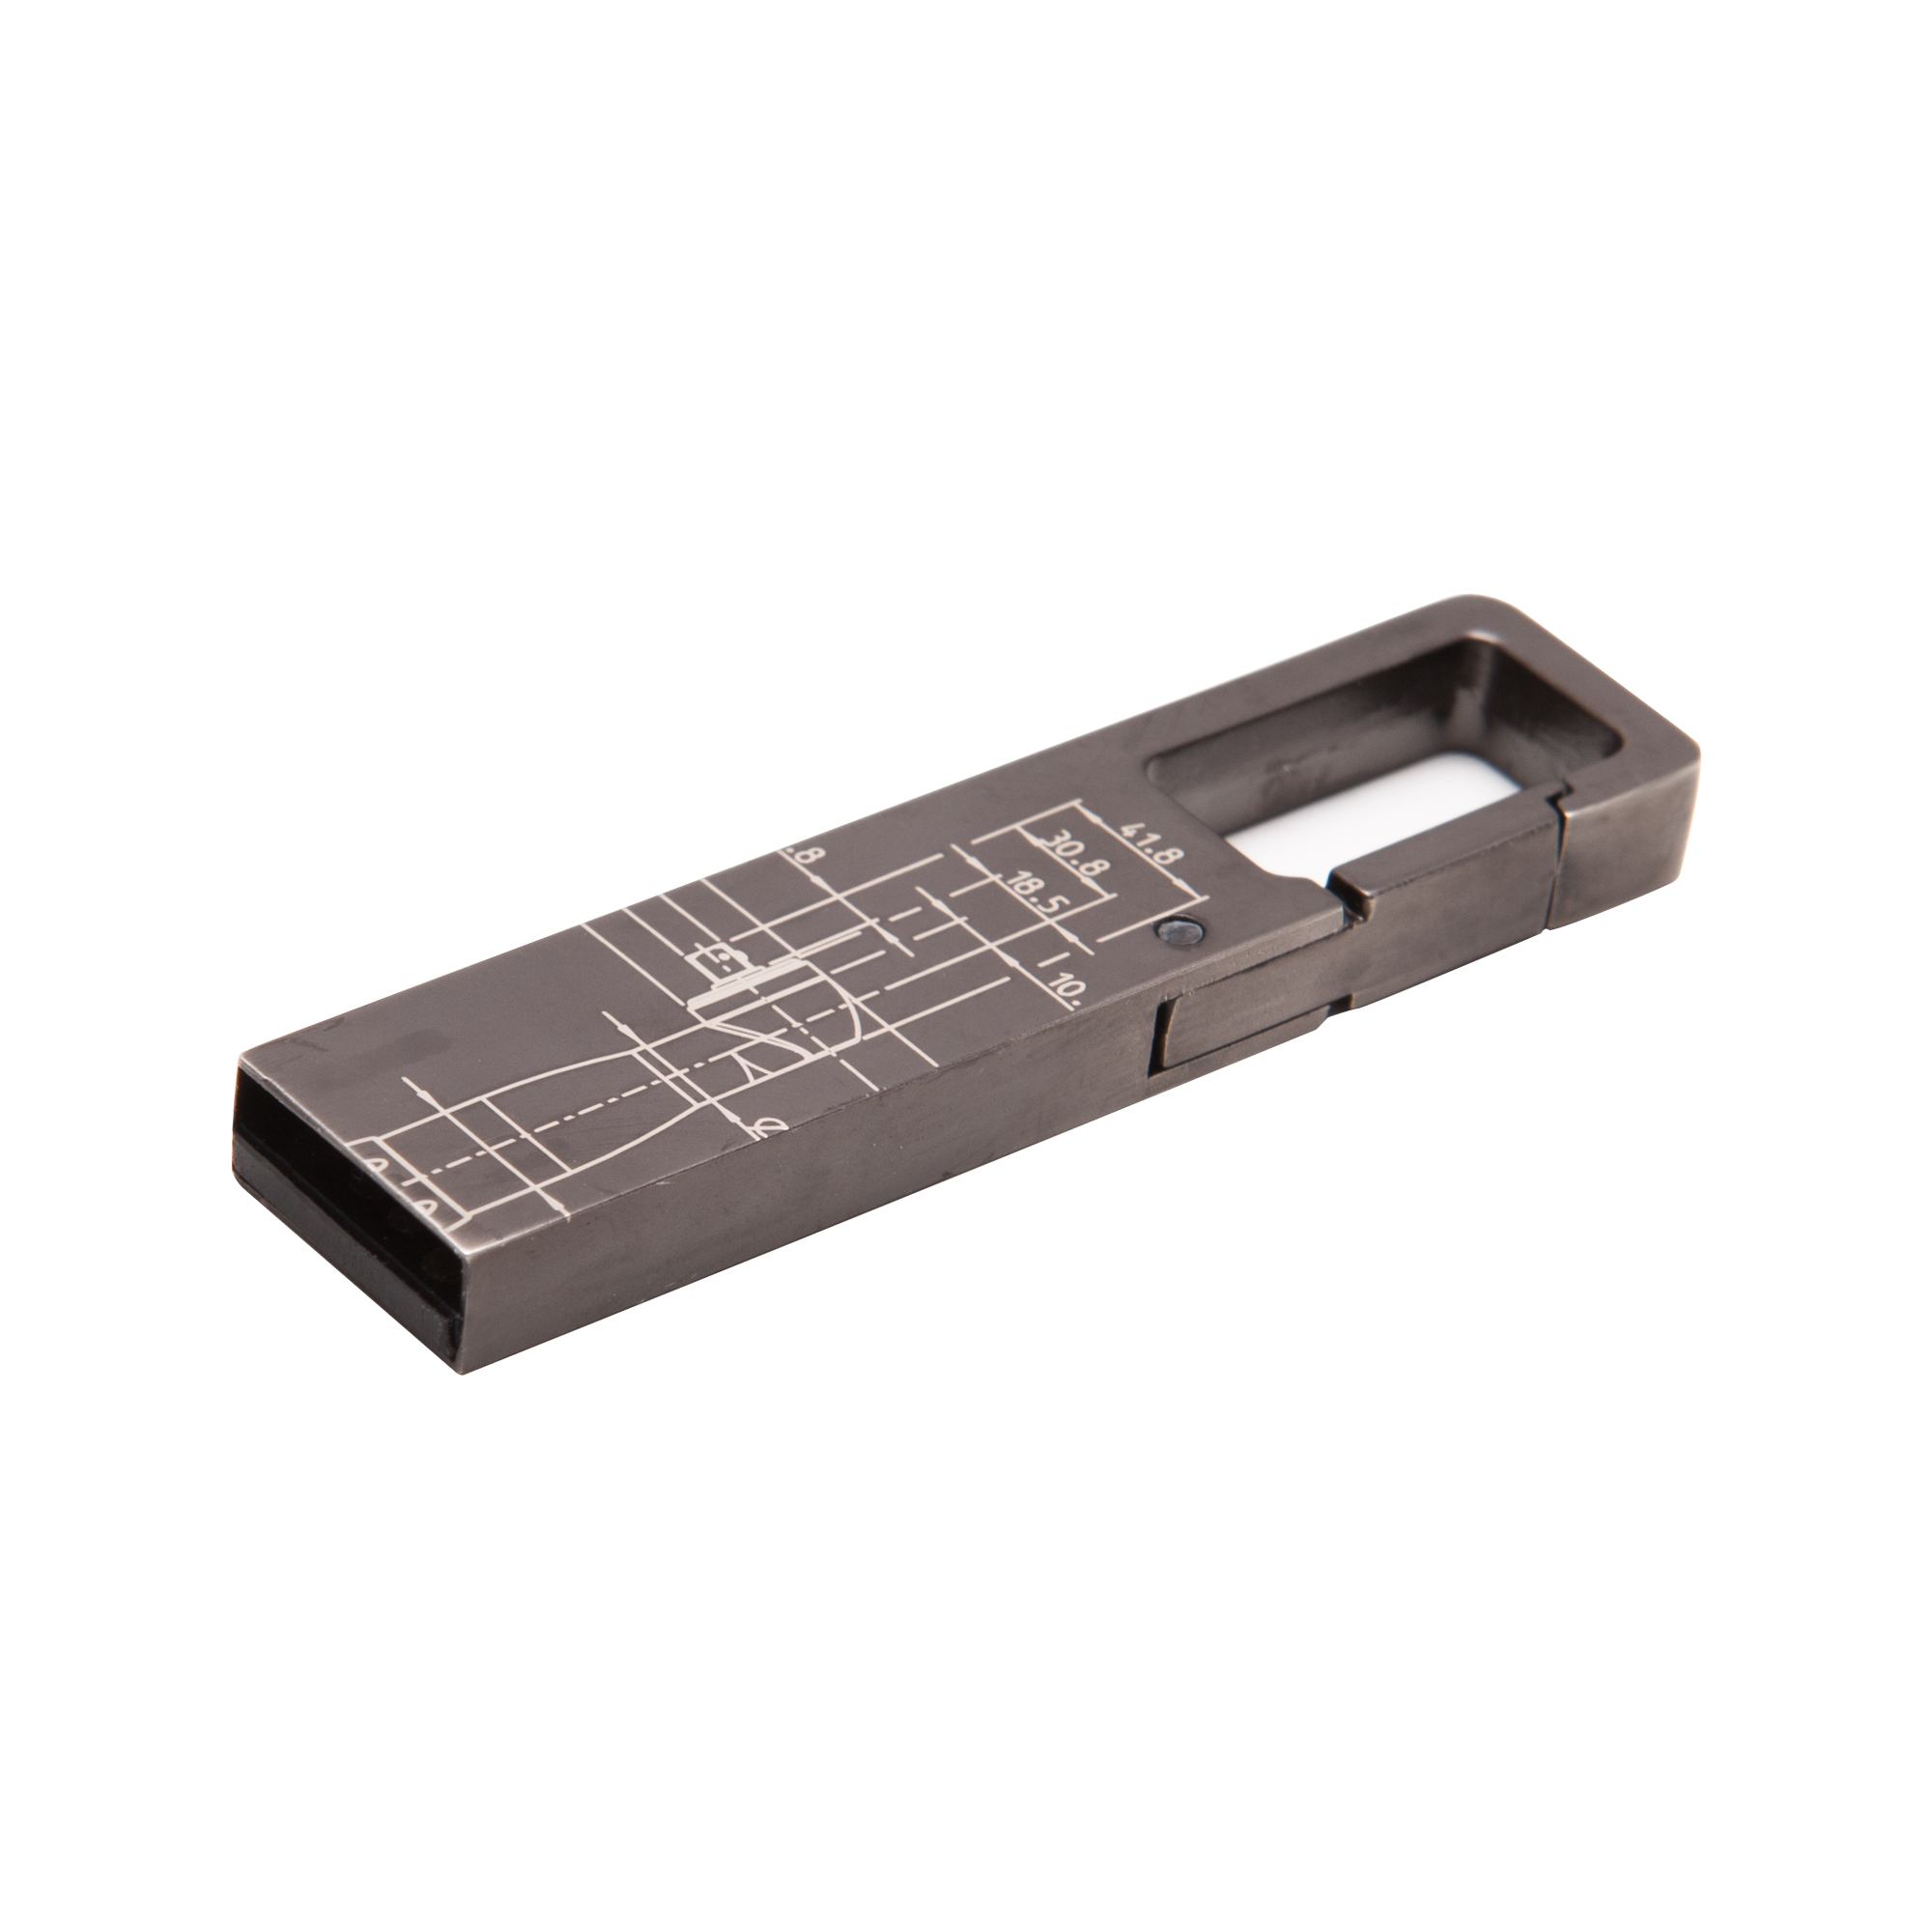 A USB memory unit made in dark gunmetal with a smart clip function. This small USB helps you store and move your files, pictures and documents in style. The BluePrint pattern is based on Atlas Copco´s key innovations. Delivered in matchbox in EVA.